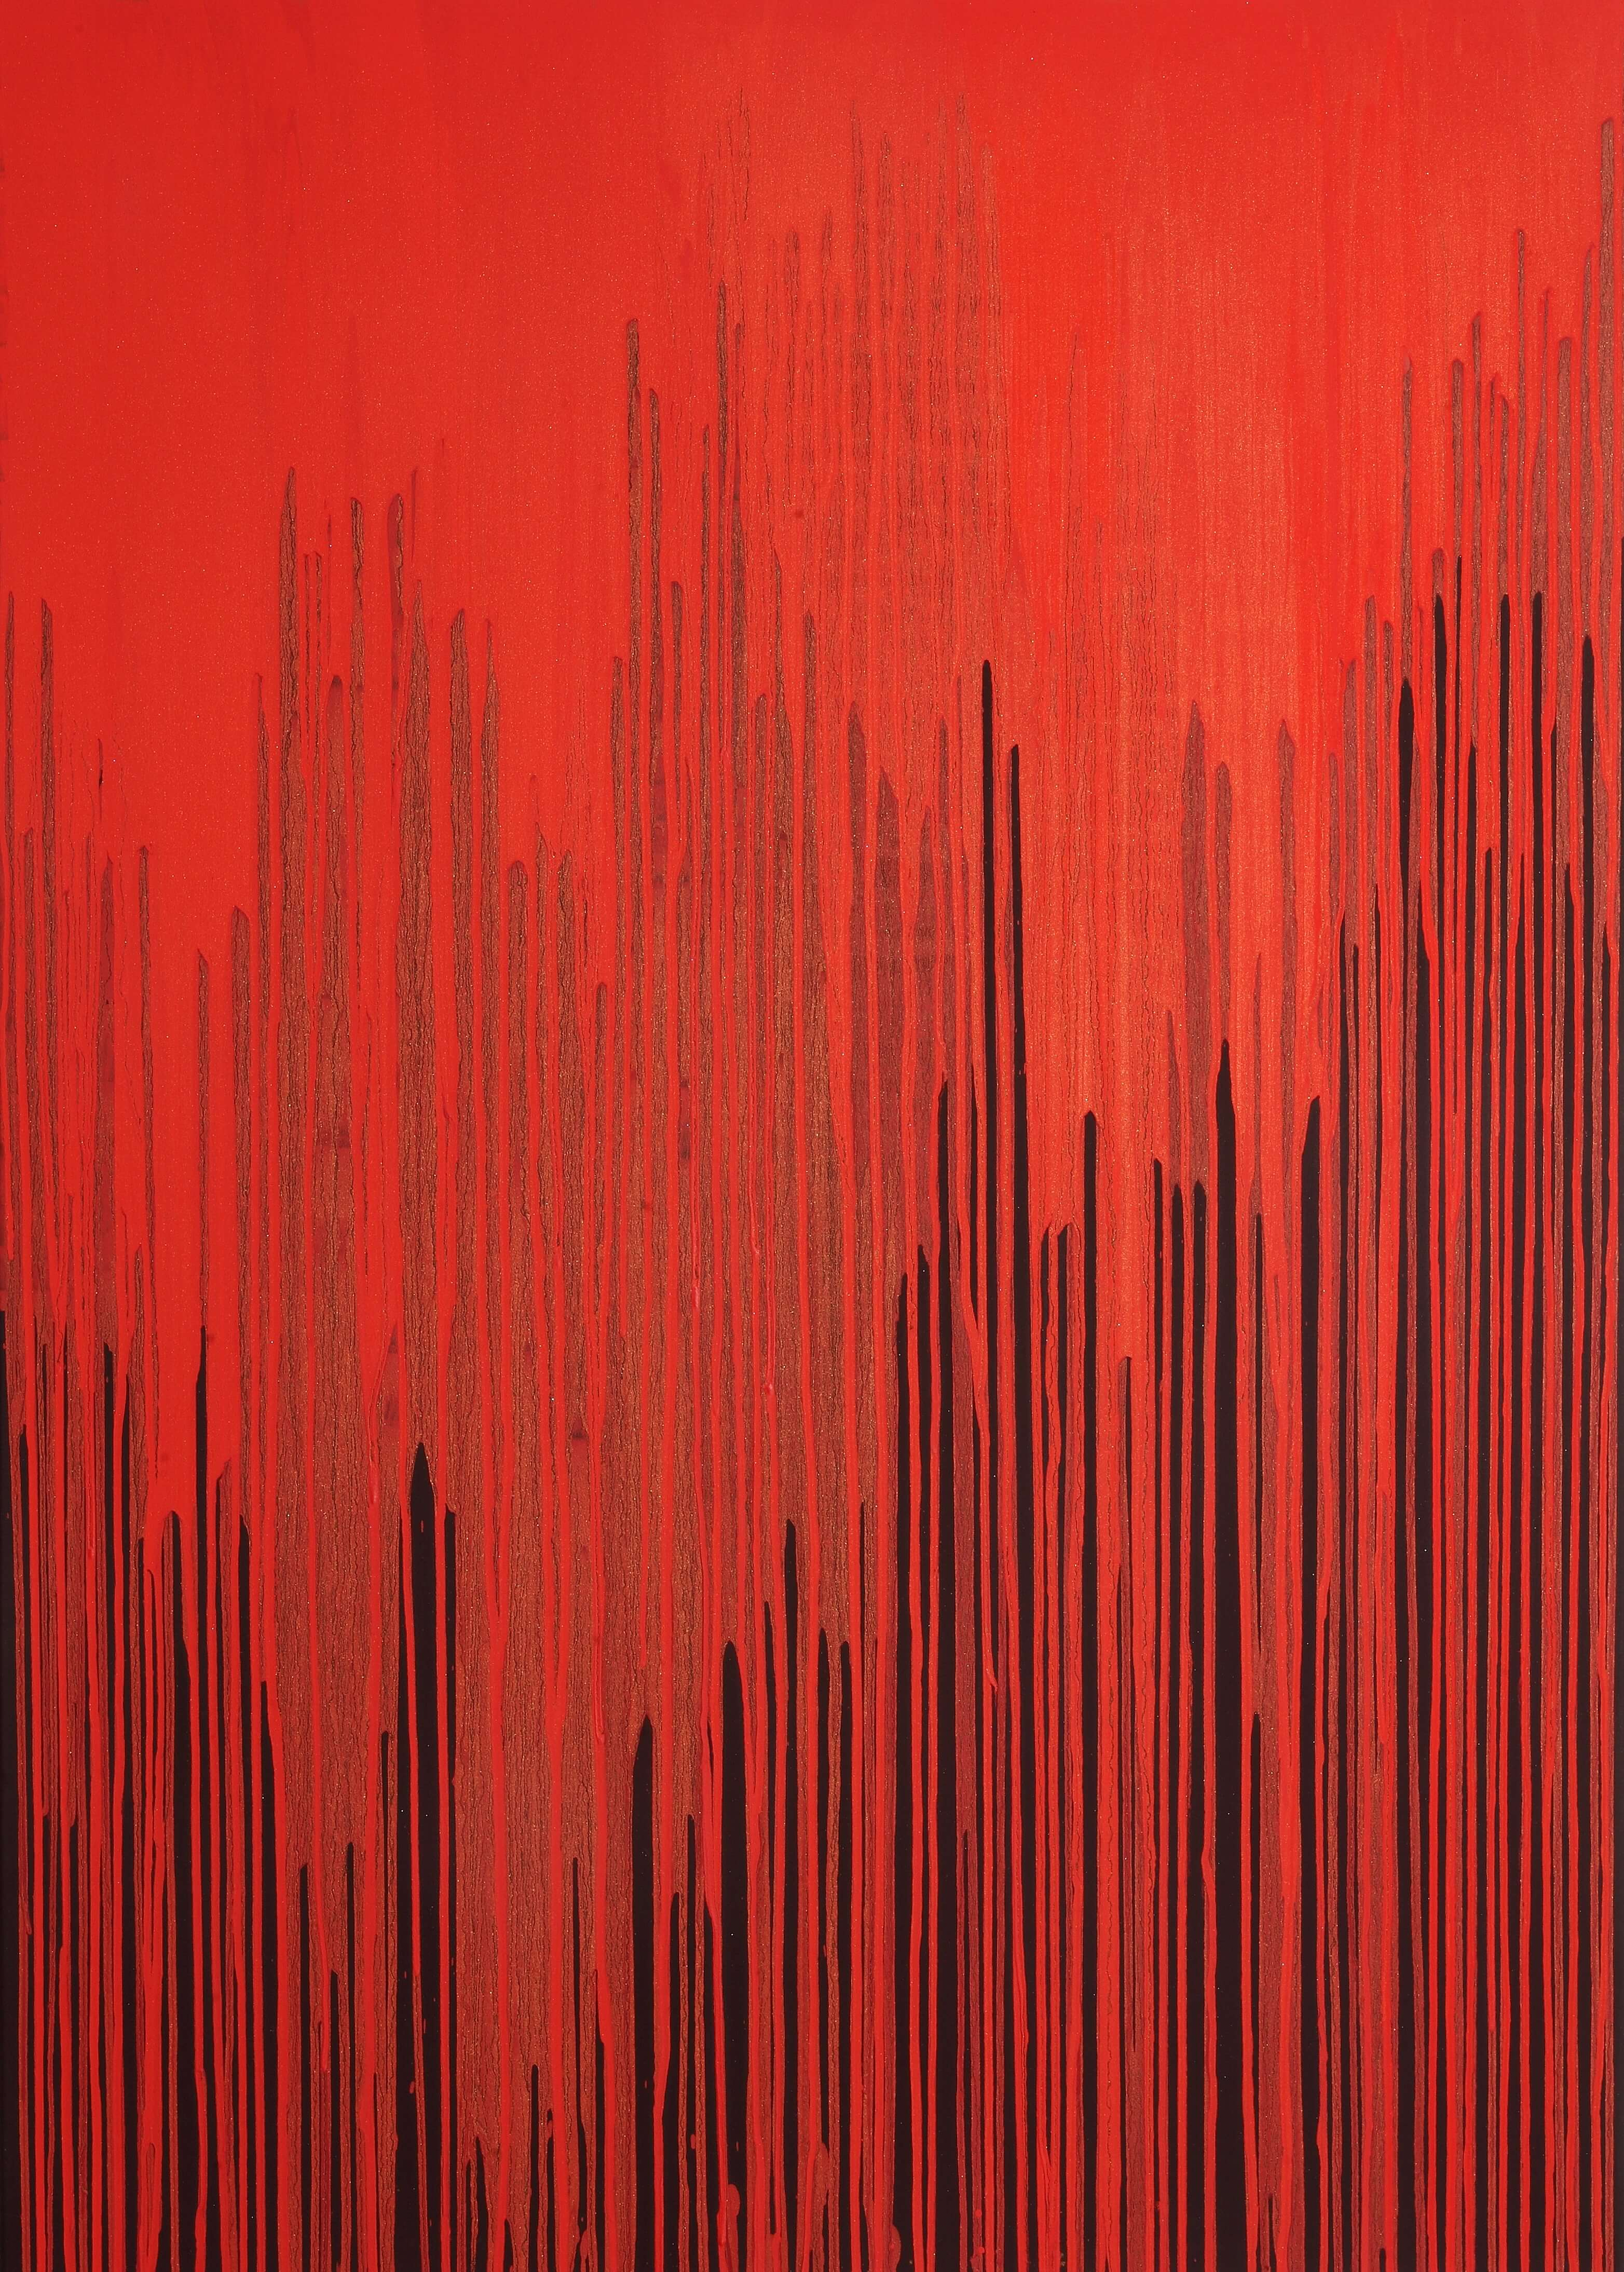 Joanna Borkowska Frequencies Red 2013 oil and gold pigment on cancas 100 x 140 cm